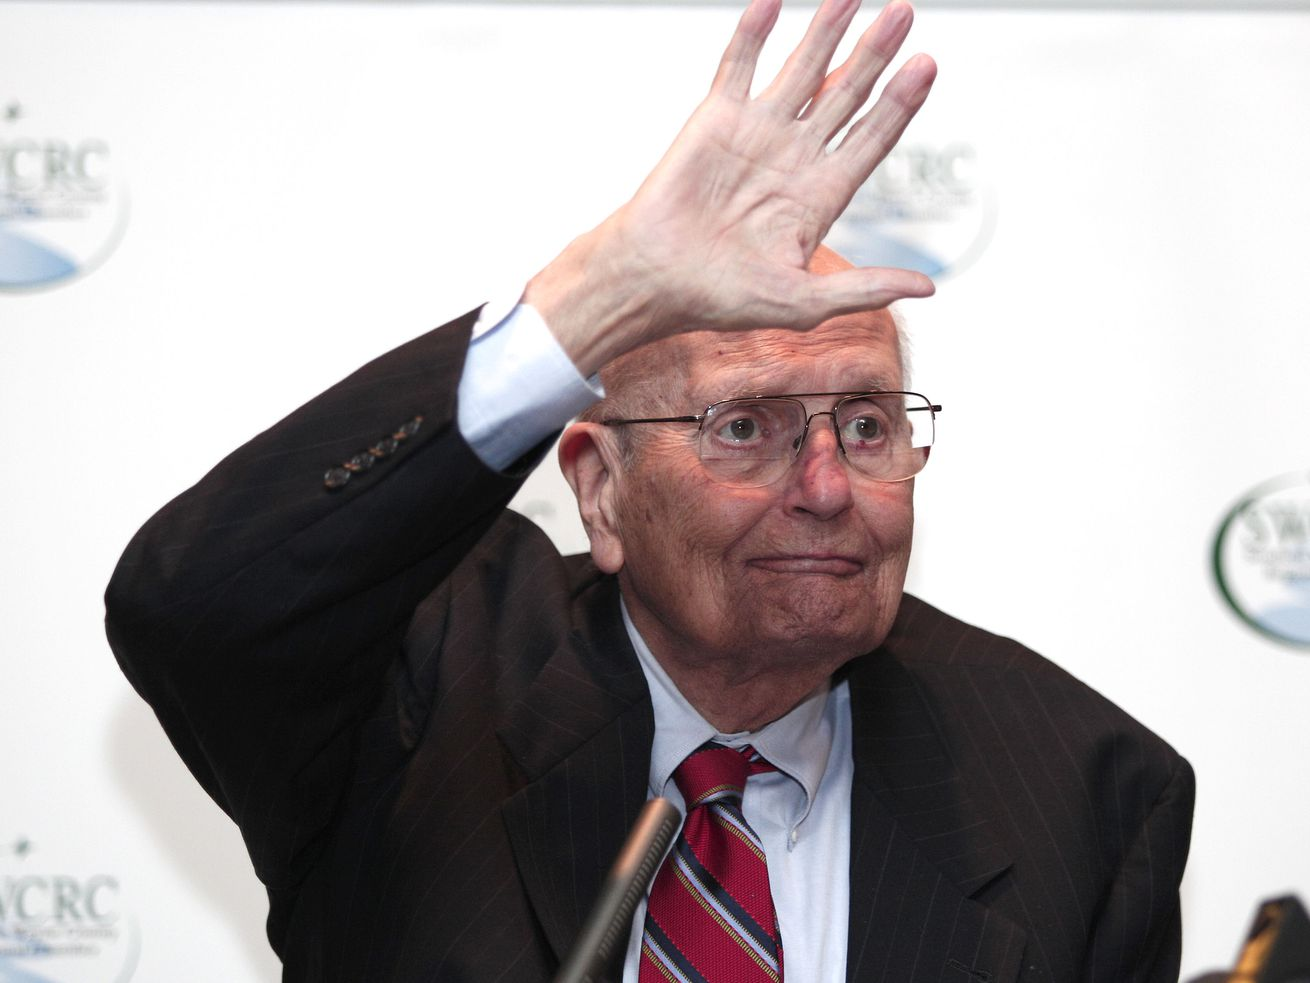 Rep. John Dingell at a luncheon in February 2014.